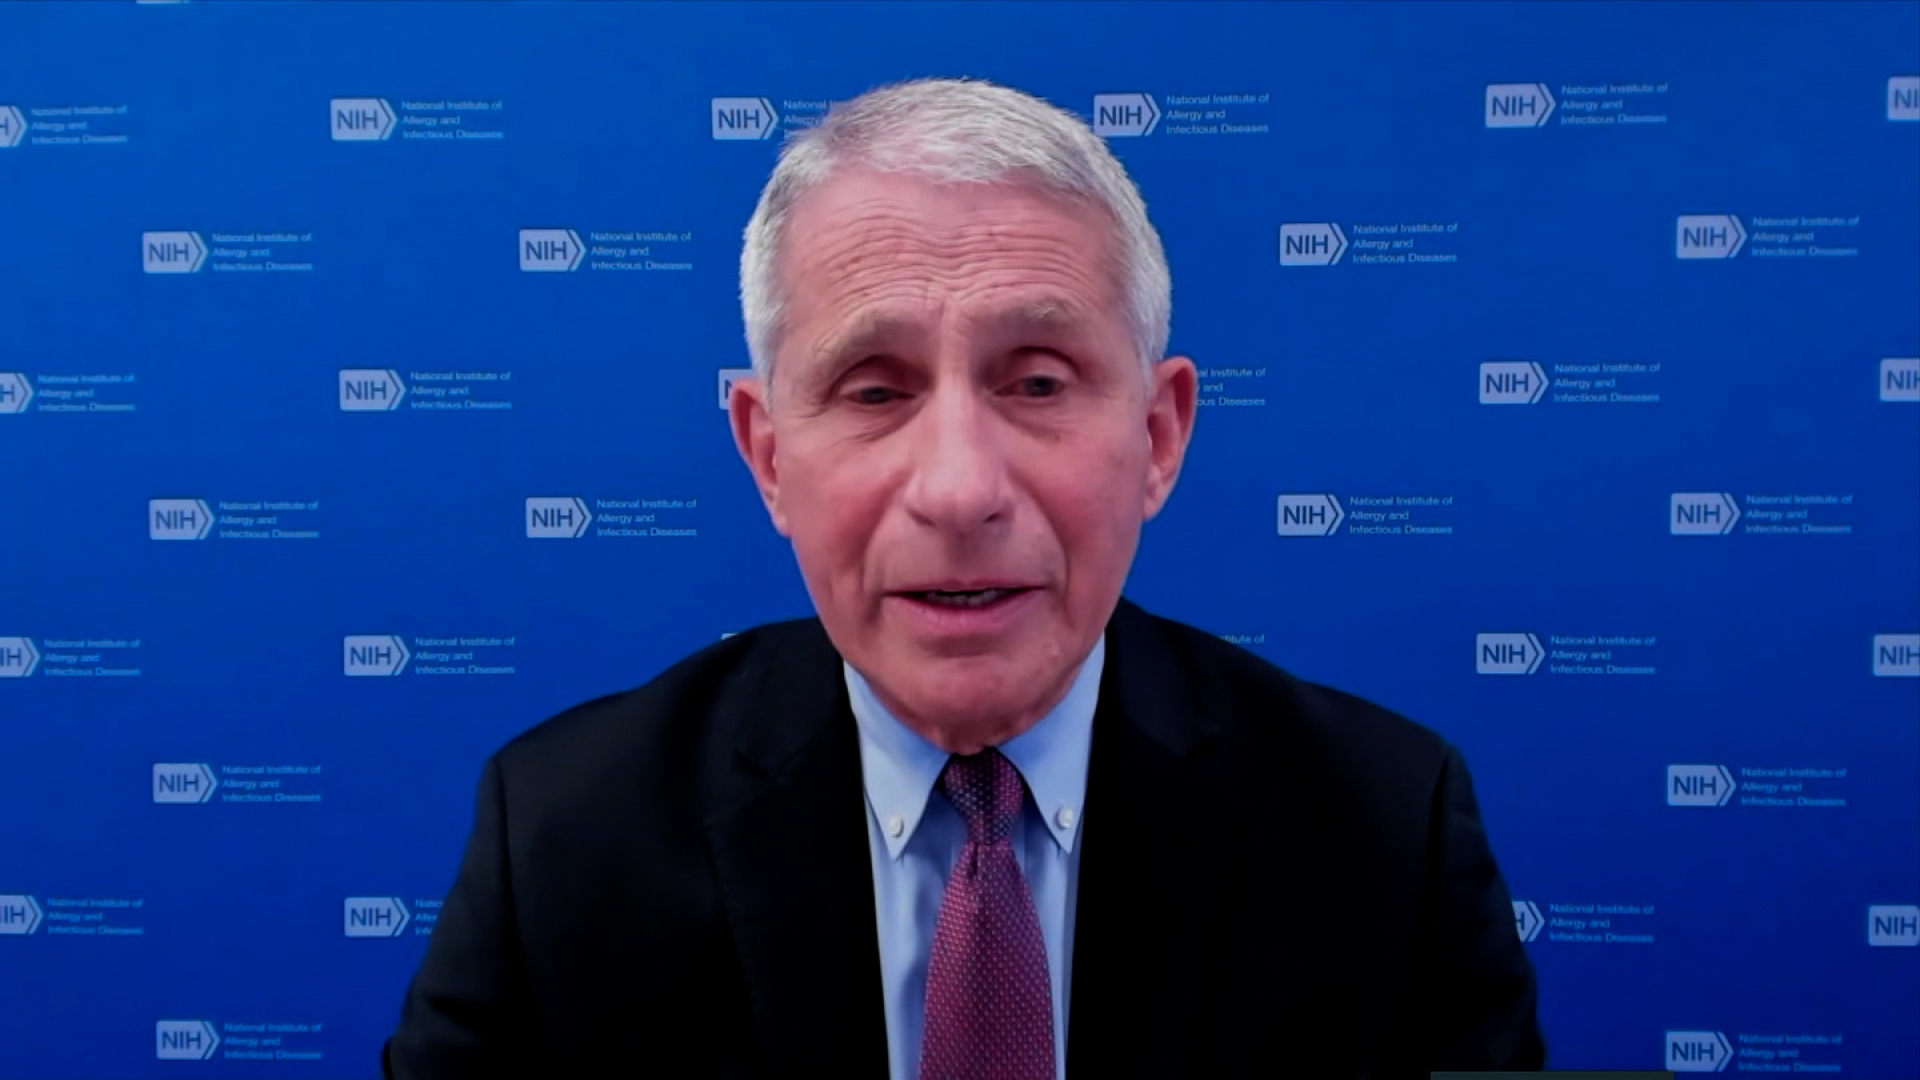 Dr. Anthony Fauci, director of the National Institute of Allergy and Infectious Diseases, speaks during a White House COVID-19 Response Team briefing on March 12.